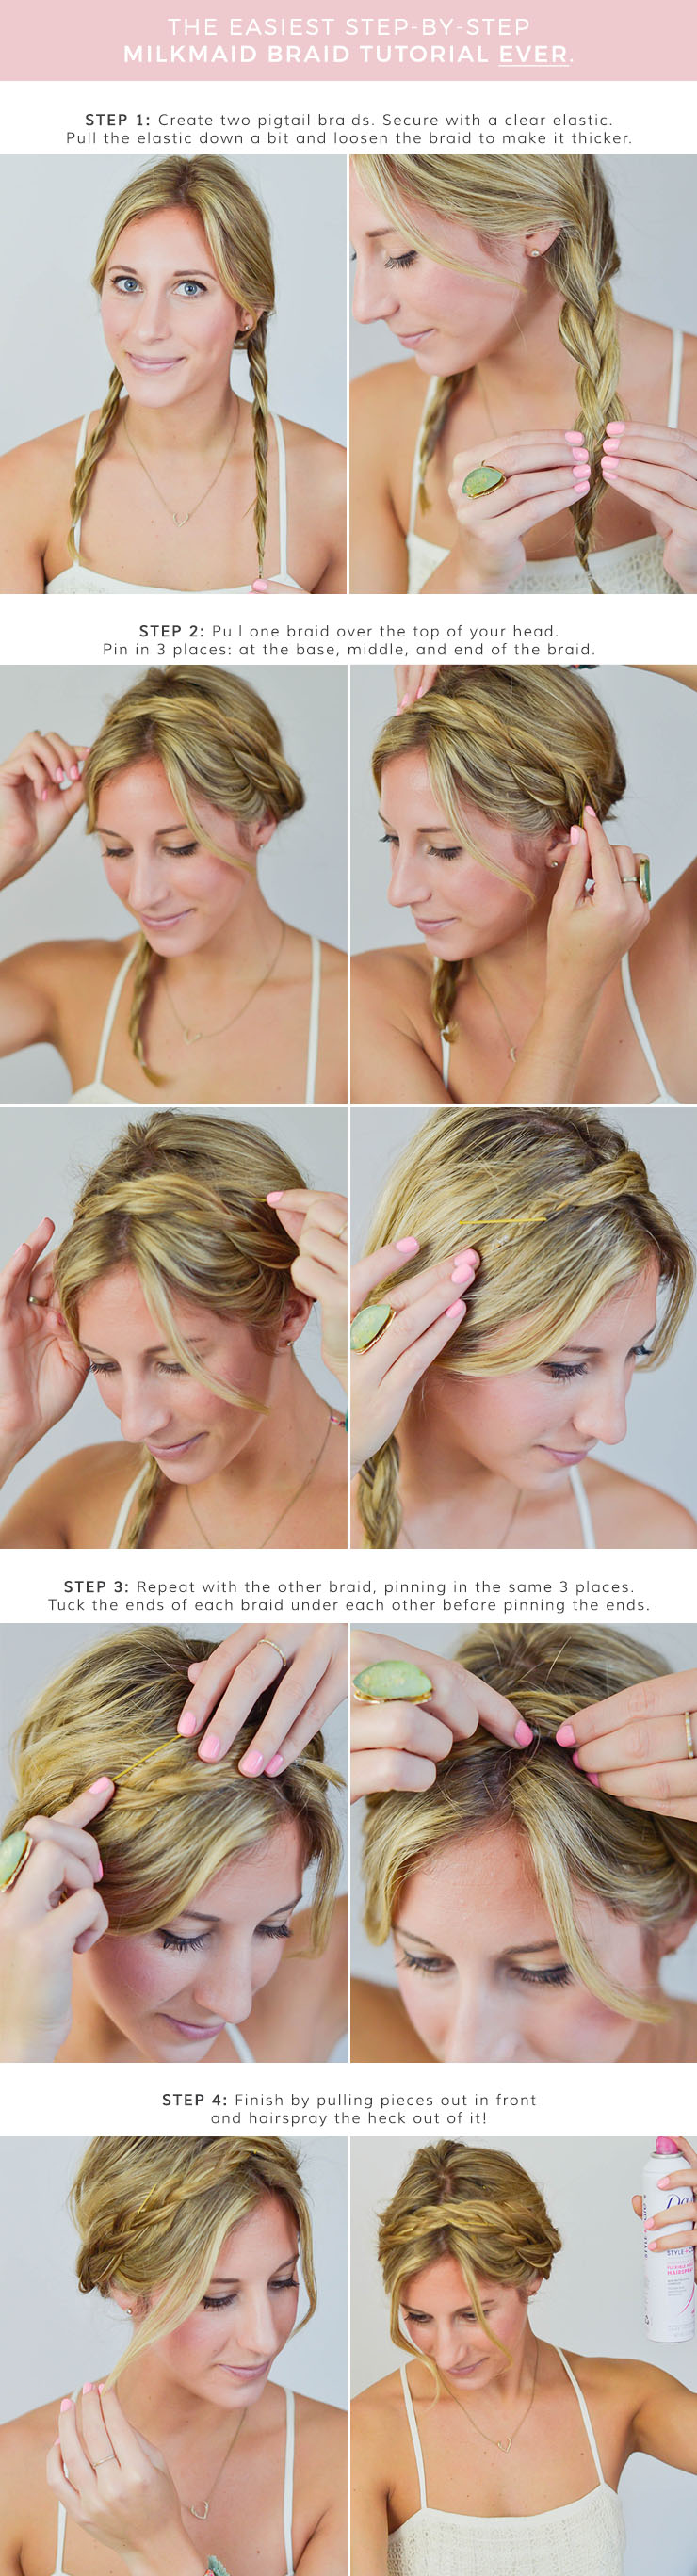 milkmaid-braid-tutorial